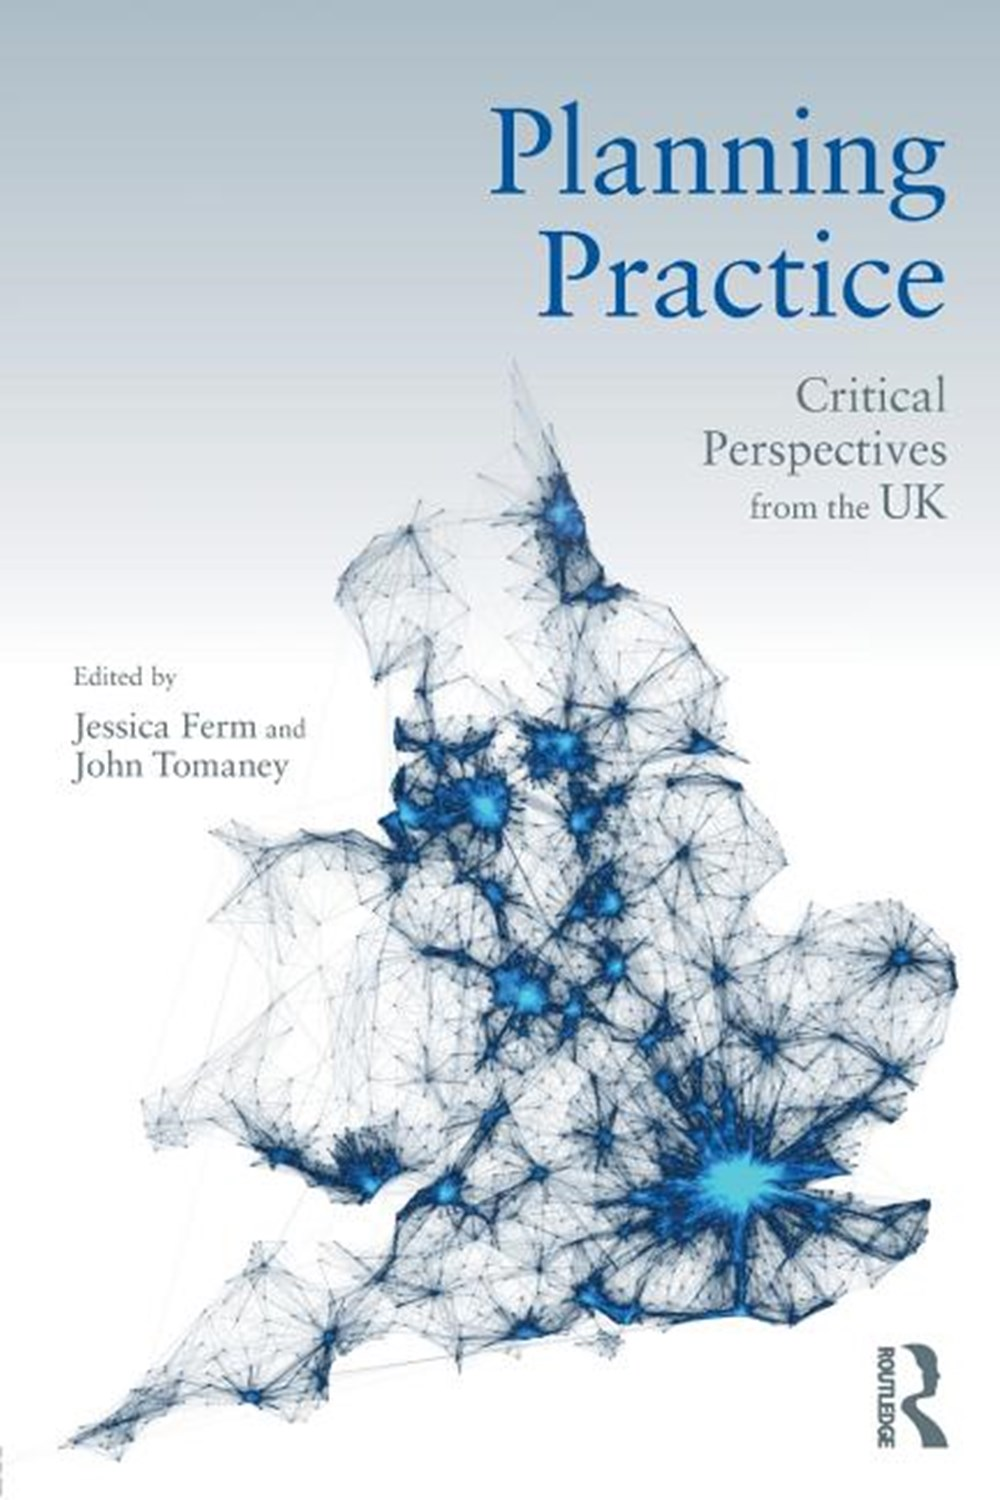 Planning Practice Critical Perspectives from the UK